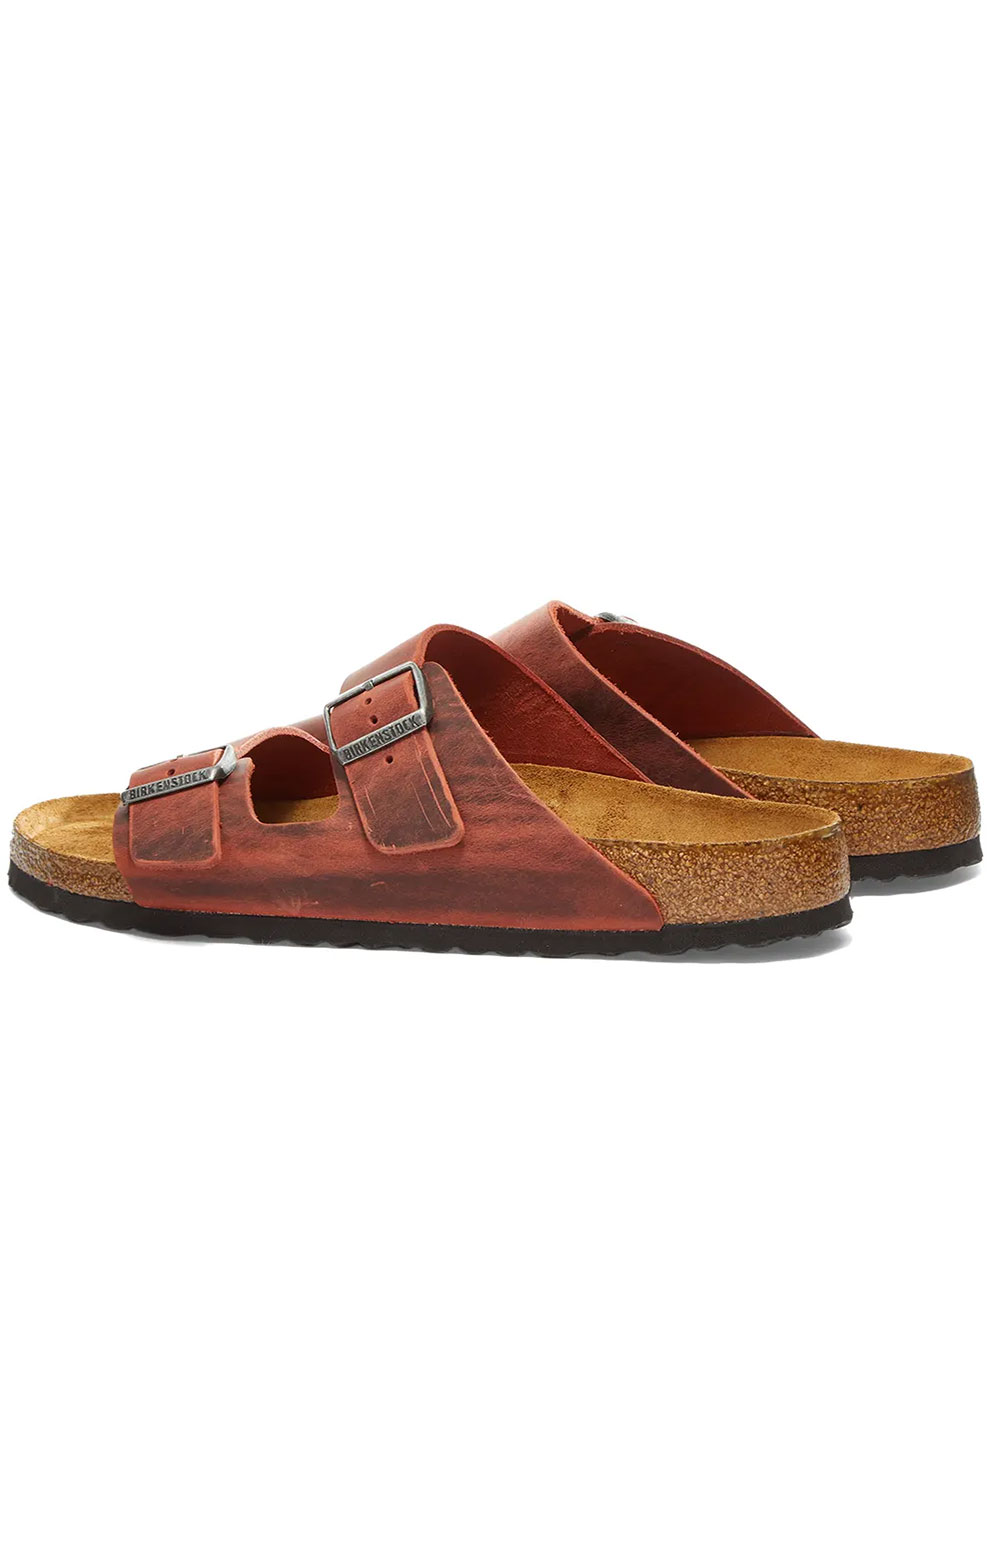 (1015544) Arizona Soft Footbed Sandals - Red Oil  4